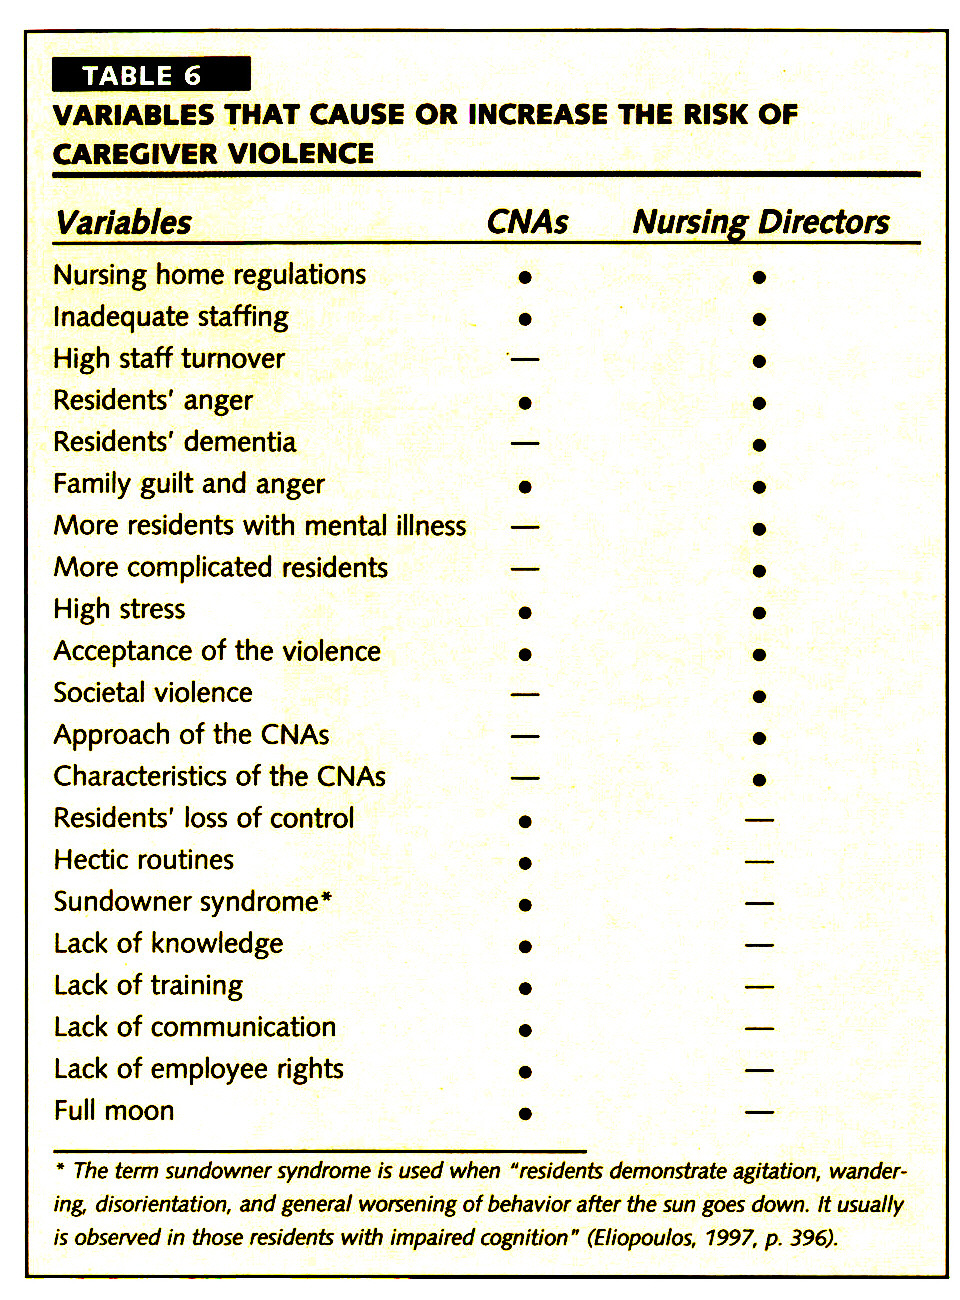 TABLE 6VARIABLES THAT CAUSE OR INCREASE THE RISK OF CAREGIVER VIOLENCE